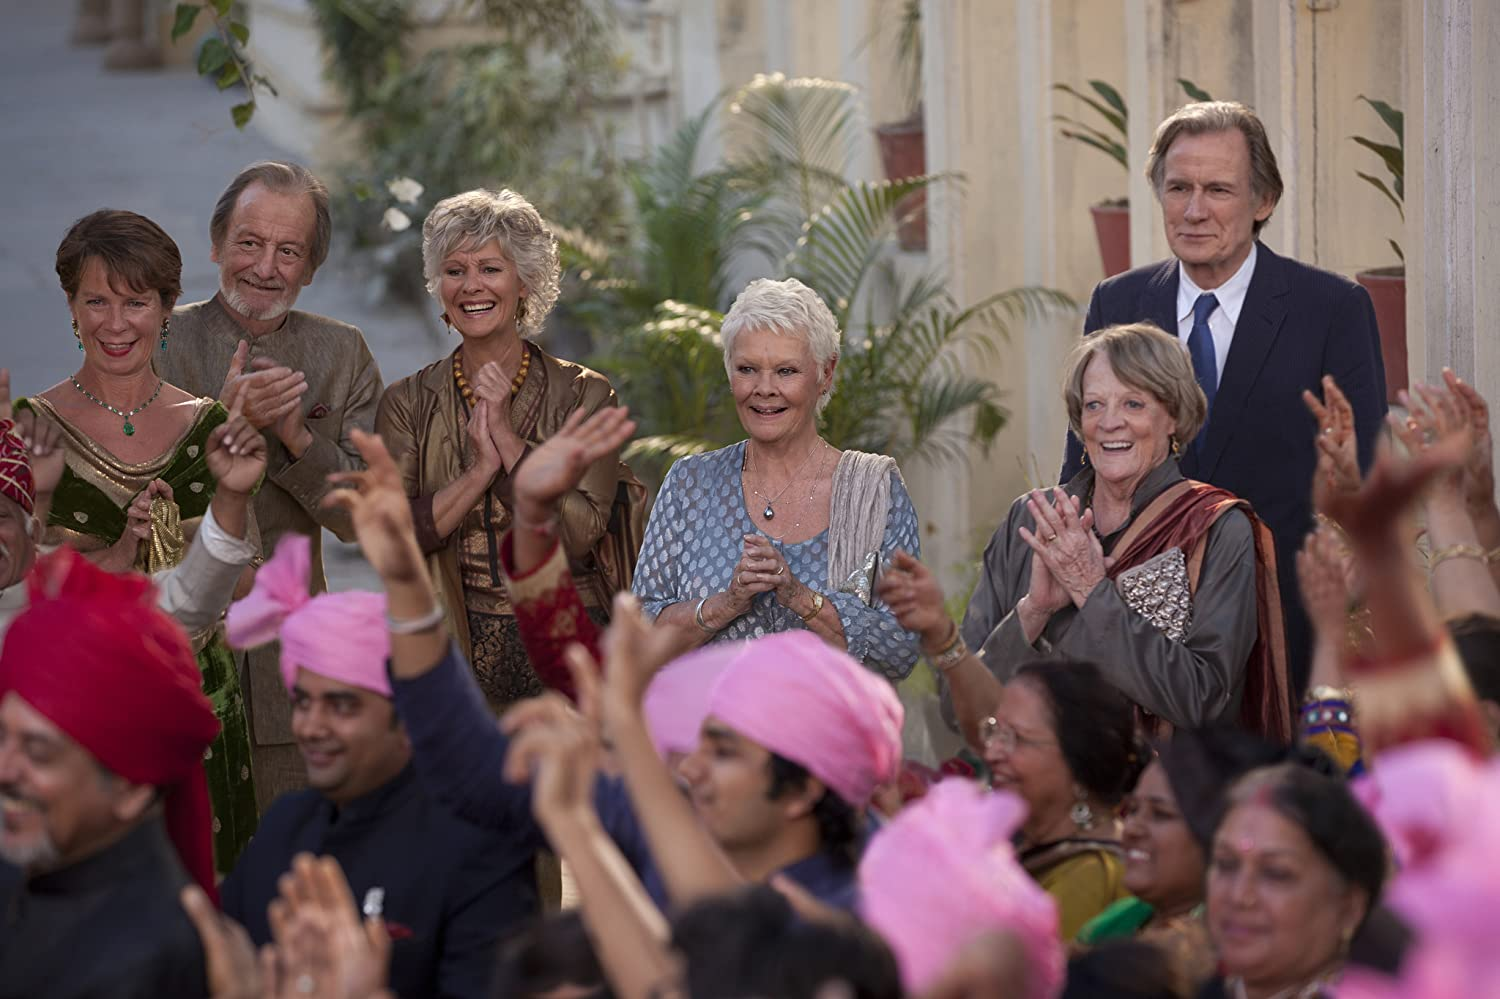 Judi Dench, Maggie Smith, Diana Hardcastle, Celia Imrie, Bill Nighy, and Ronald Pickup in The Second Best Exotic Marigold Hotel (2015)